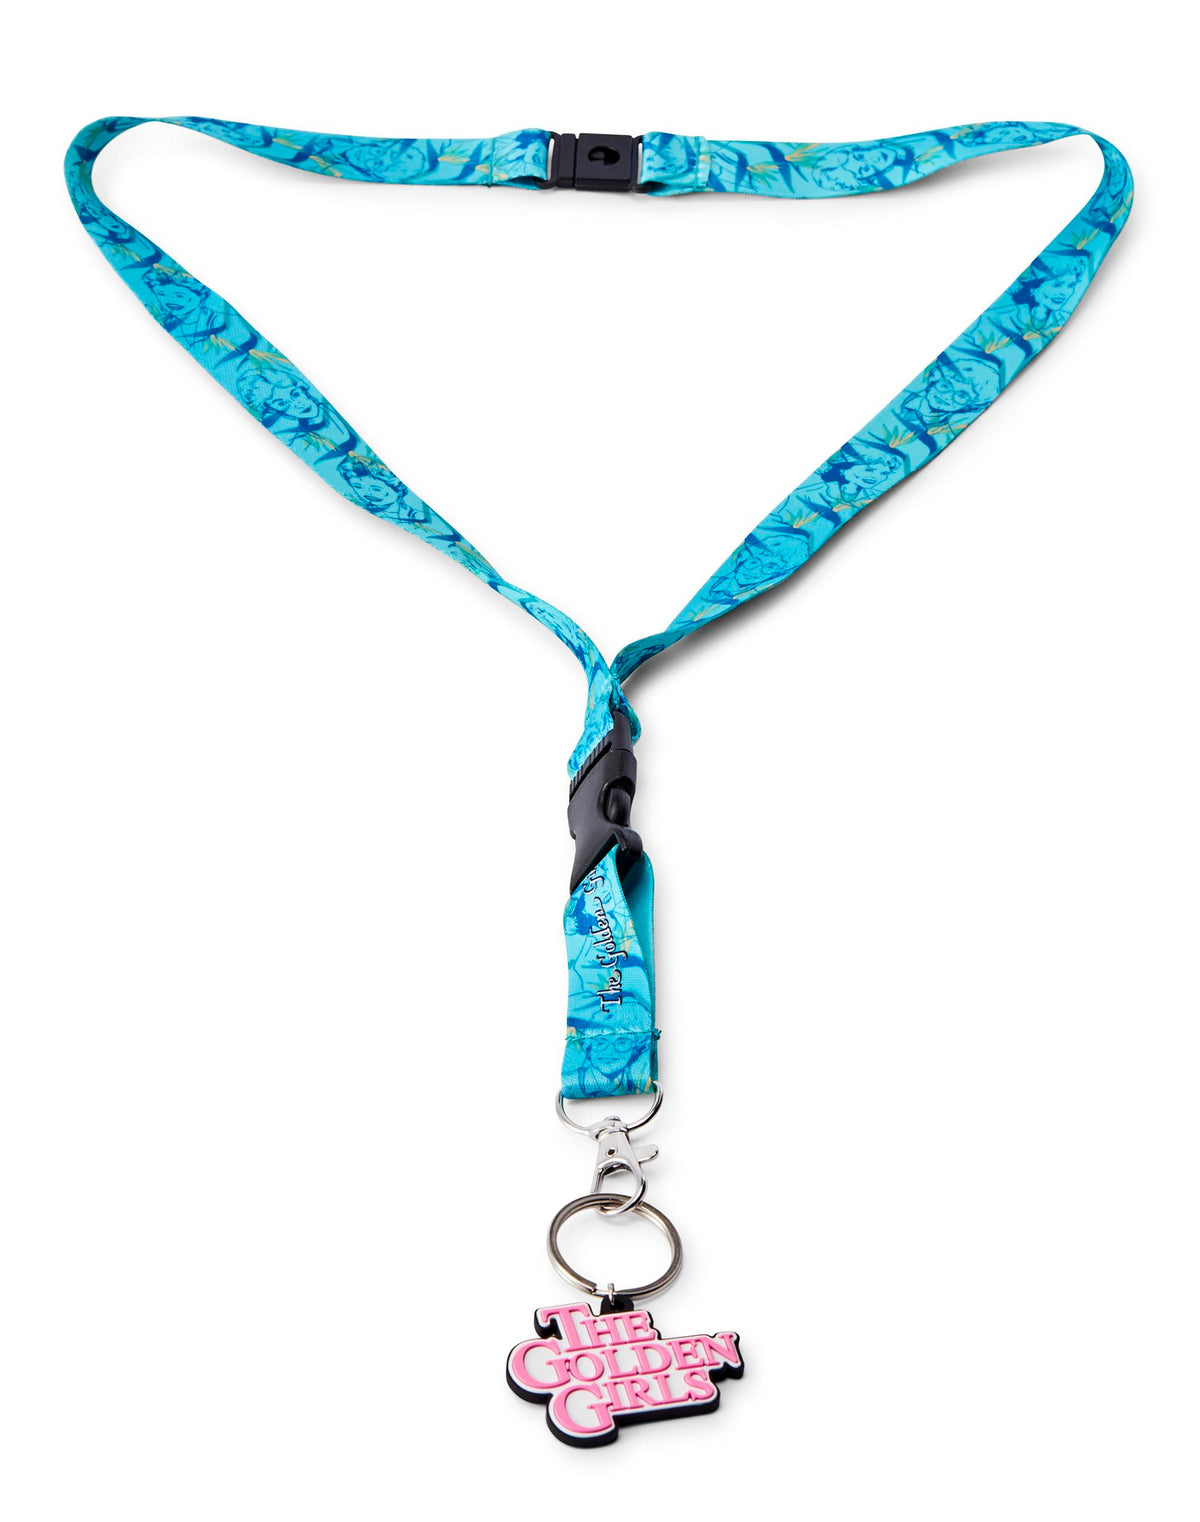 The Golden Girls Scented Break-Away Lanyard With Charm | Lavender Scented